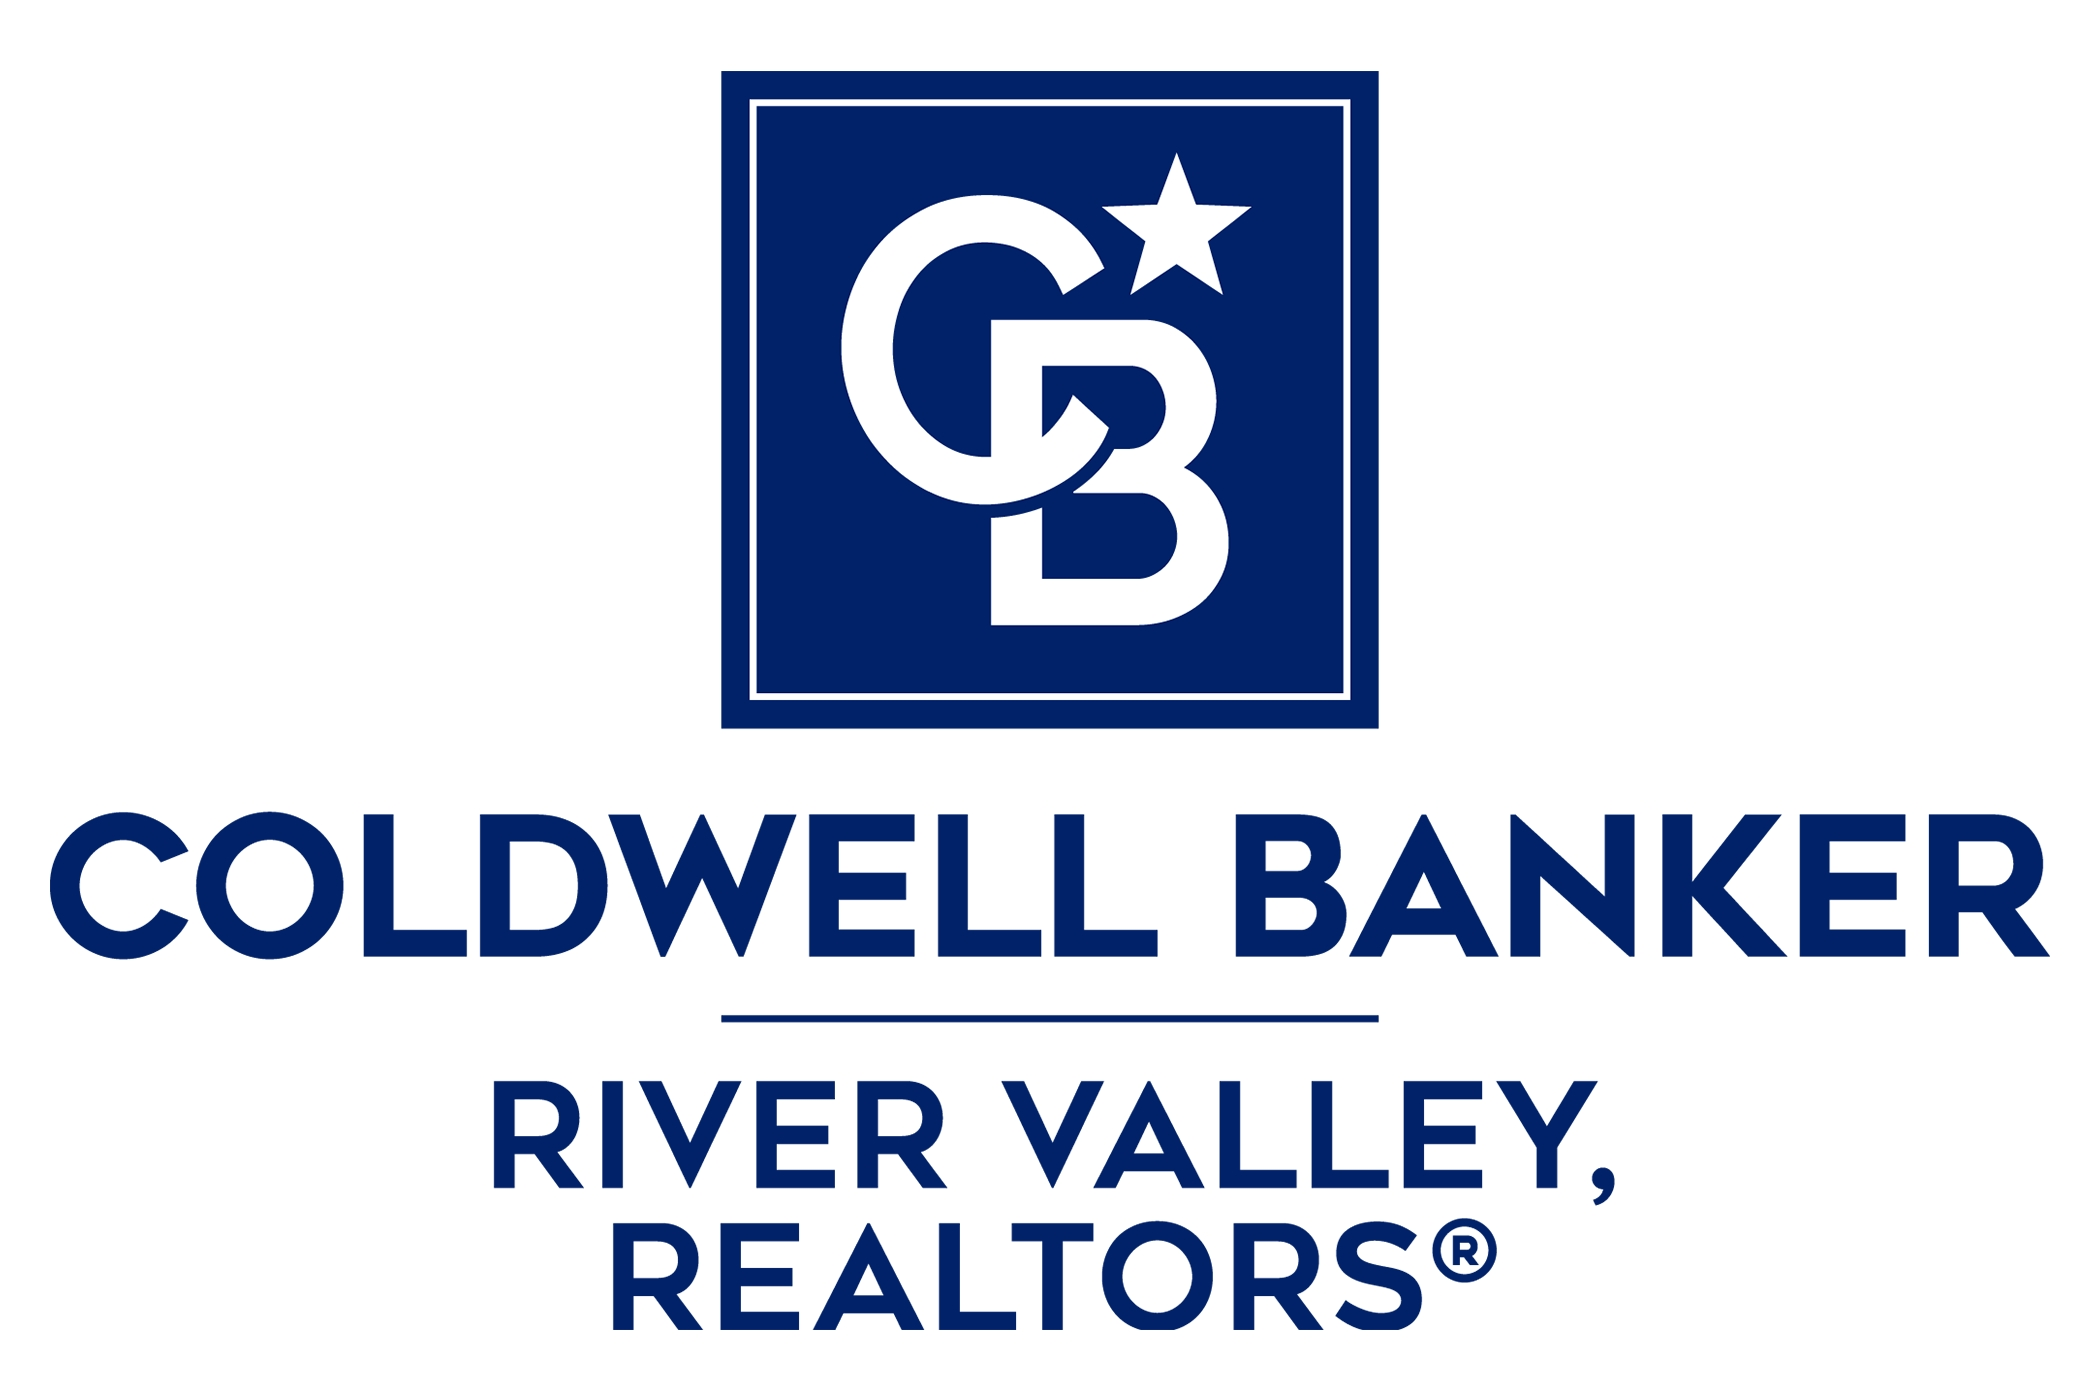 Steve Murray - Coldwell Banker River Valley, REALTORS Logo